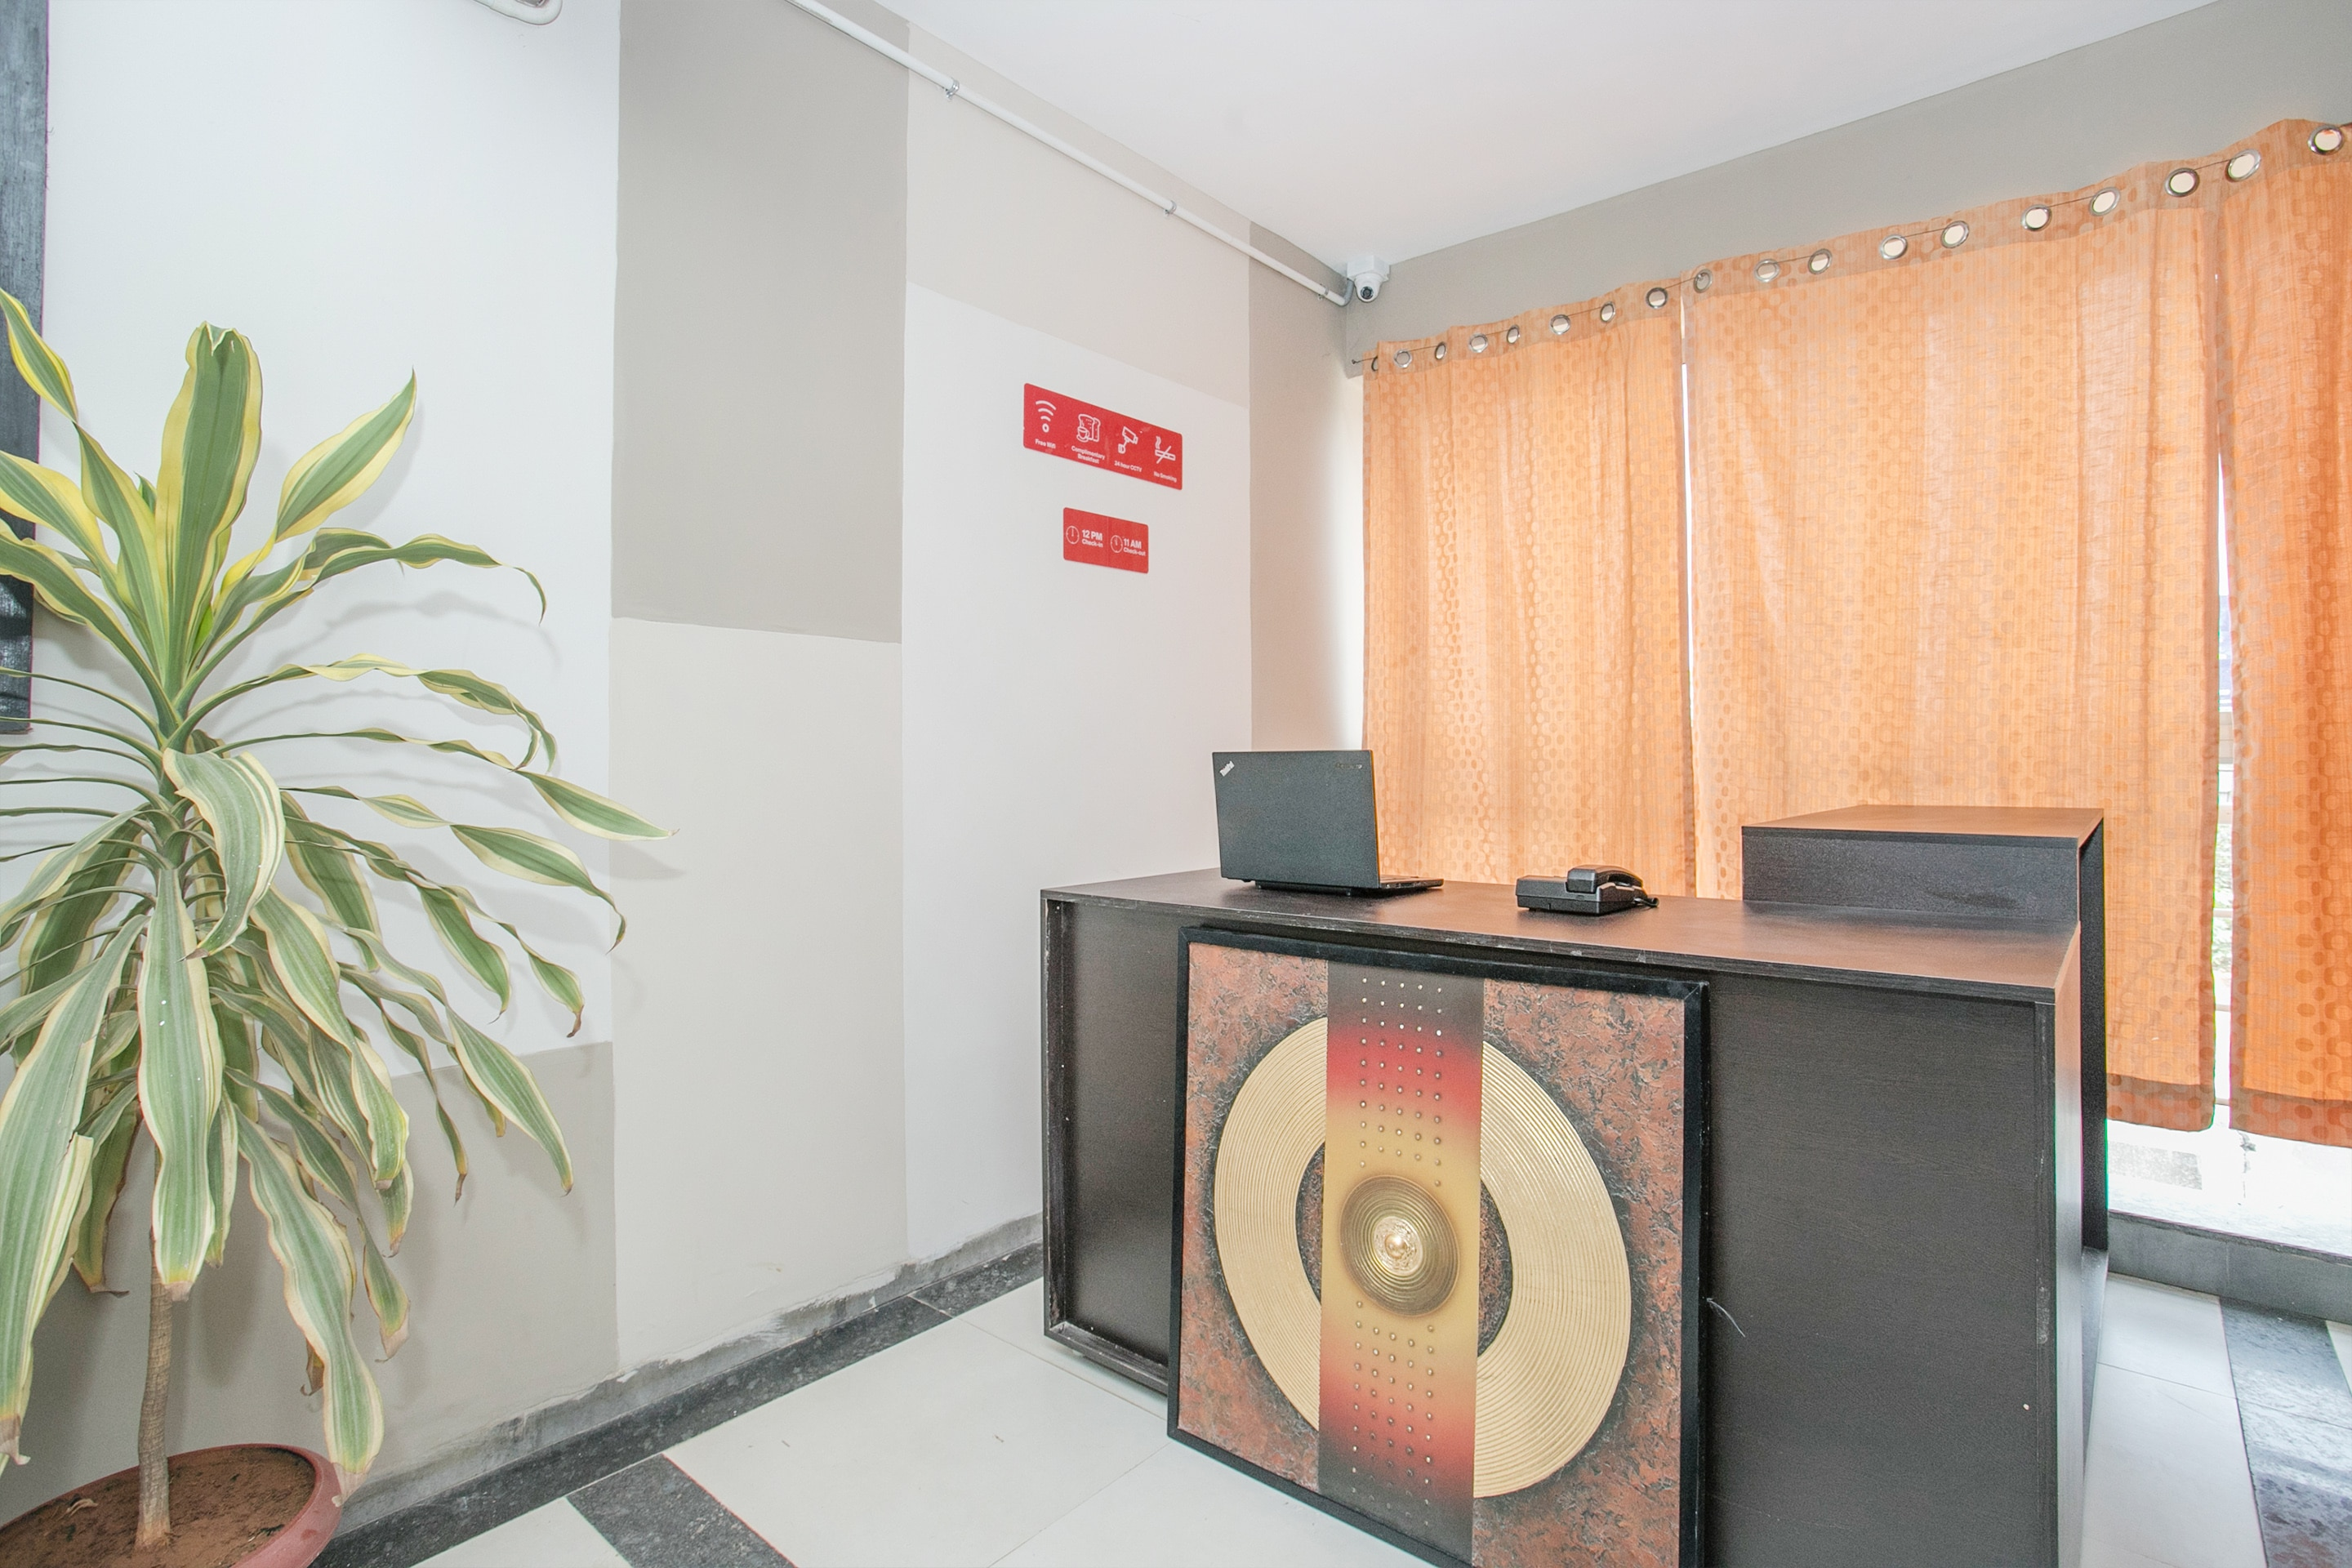 Oyo 13523 Hotel Luxor The Budget Inn, Budget Bangalore, Book